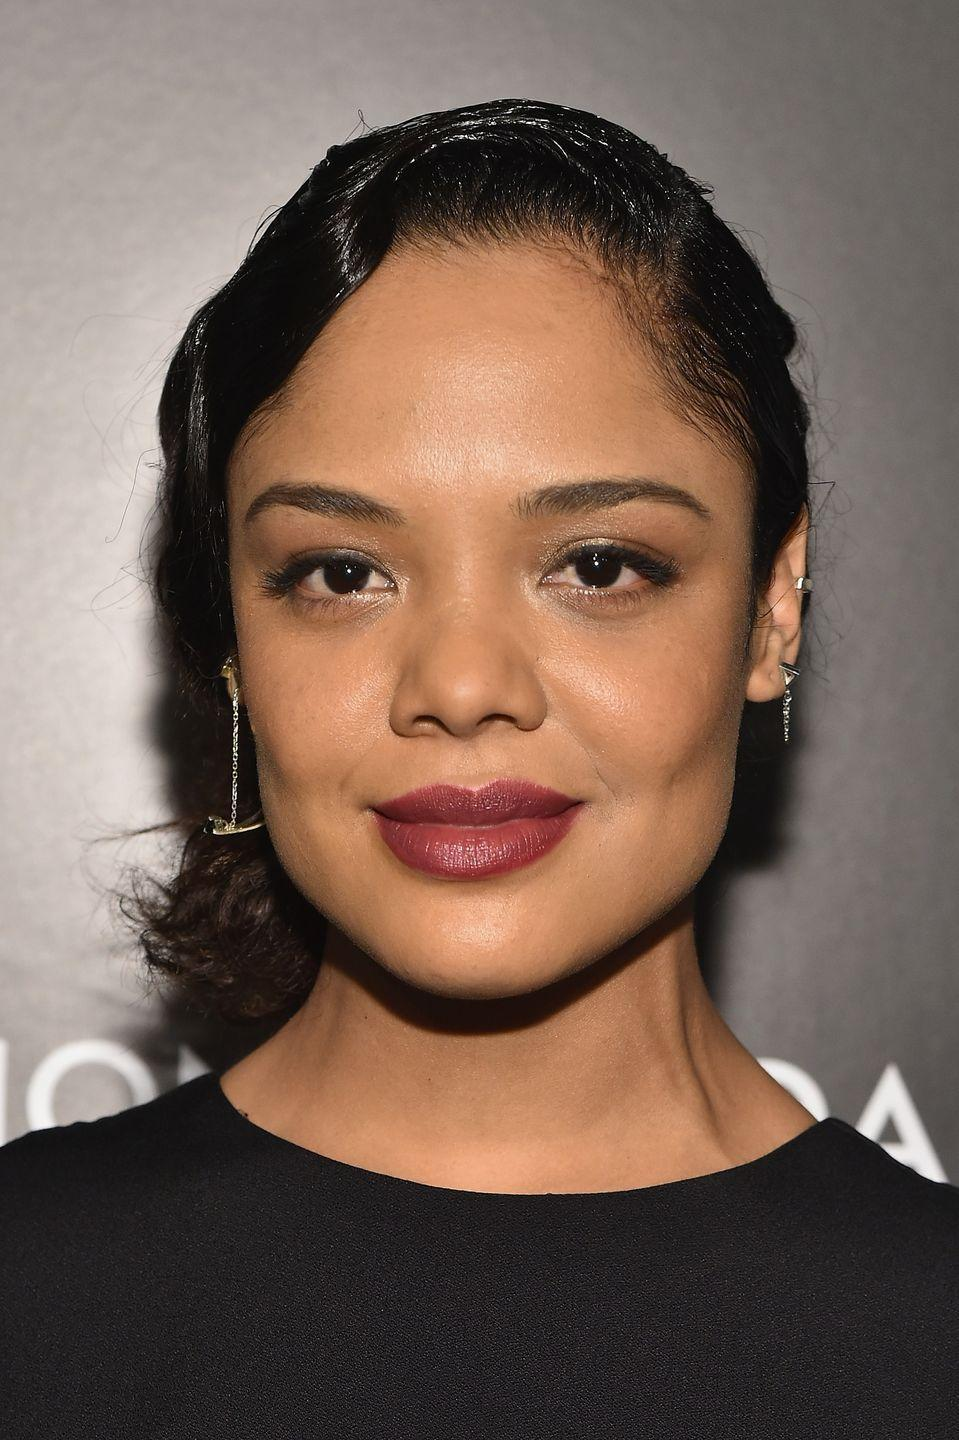 """<p>Go back in time with this more formal pinned hairstyle worn by <strong>Tessa Thompson</strong>. Styled like the flapper dancers of the 1920s, slick one side of hair over to the opposite side of the head and secure with pins to achieve the look. </p><p><a class=""""link rapid-noclick-resp"""" href=""""https://www.amazon.com/dp/B00E9SP888/ref=sspa_dk_detail_0?tag=syn-yahoo-20&ascsubtag=%5Bartid%7C10055.g.2471%5Bsrc%7Cyahoo-us"""" rel=""""nofollow noopener"""" target=""""_blank"""" data-ylk=""""slk:SHOP HAIR PINS"""">SHOP HAIR PINS</a></p>"""